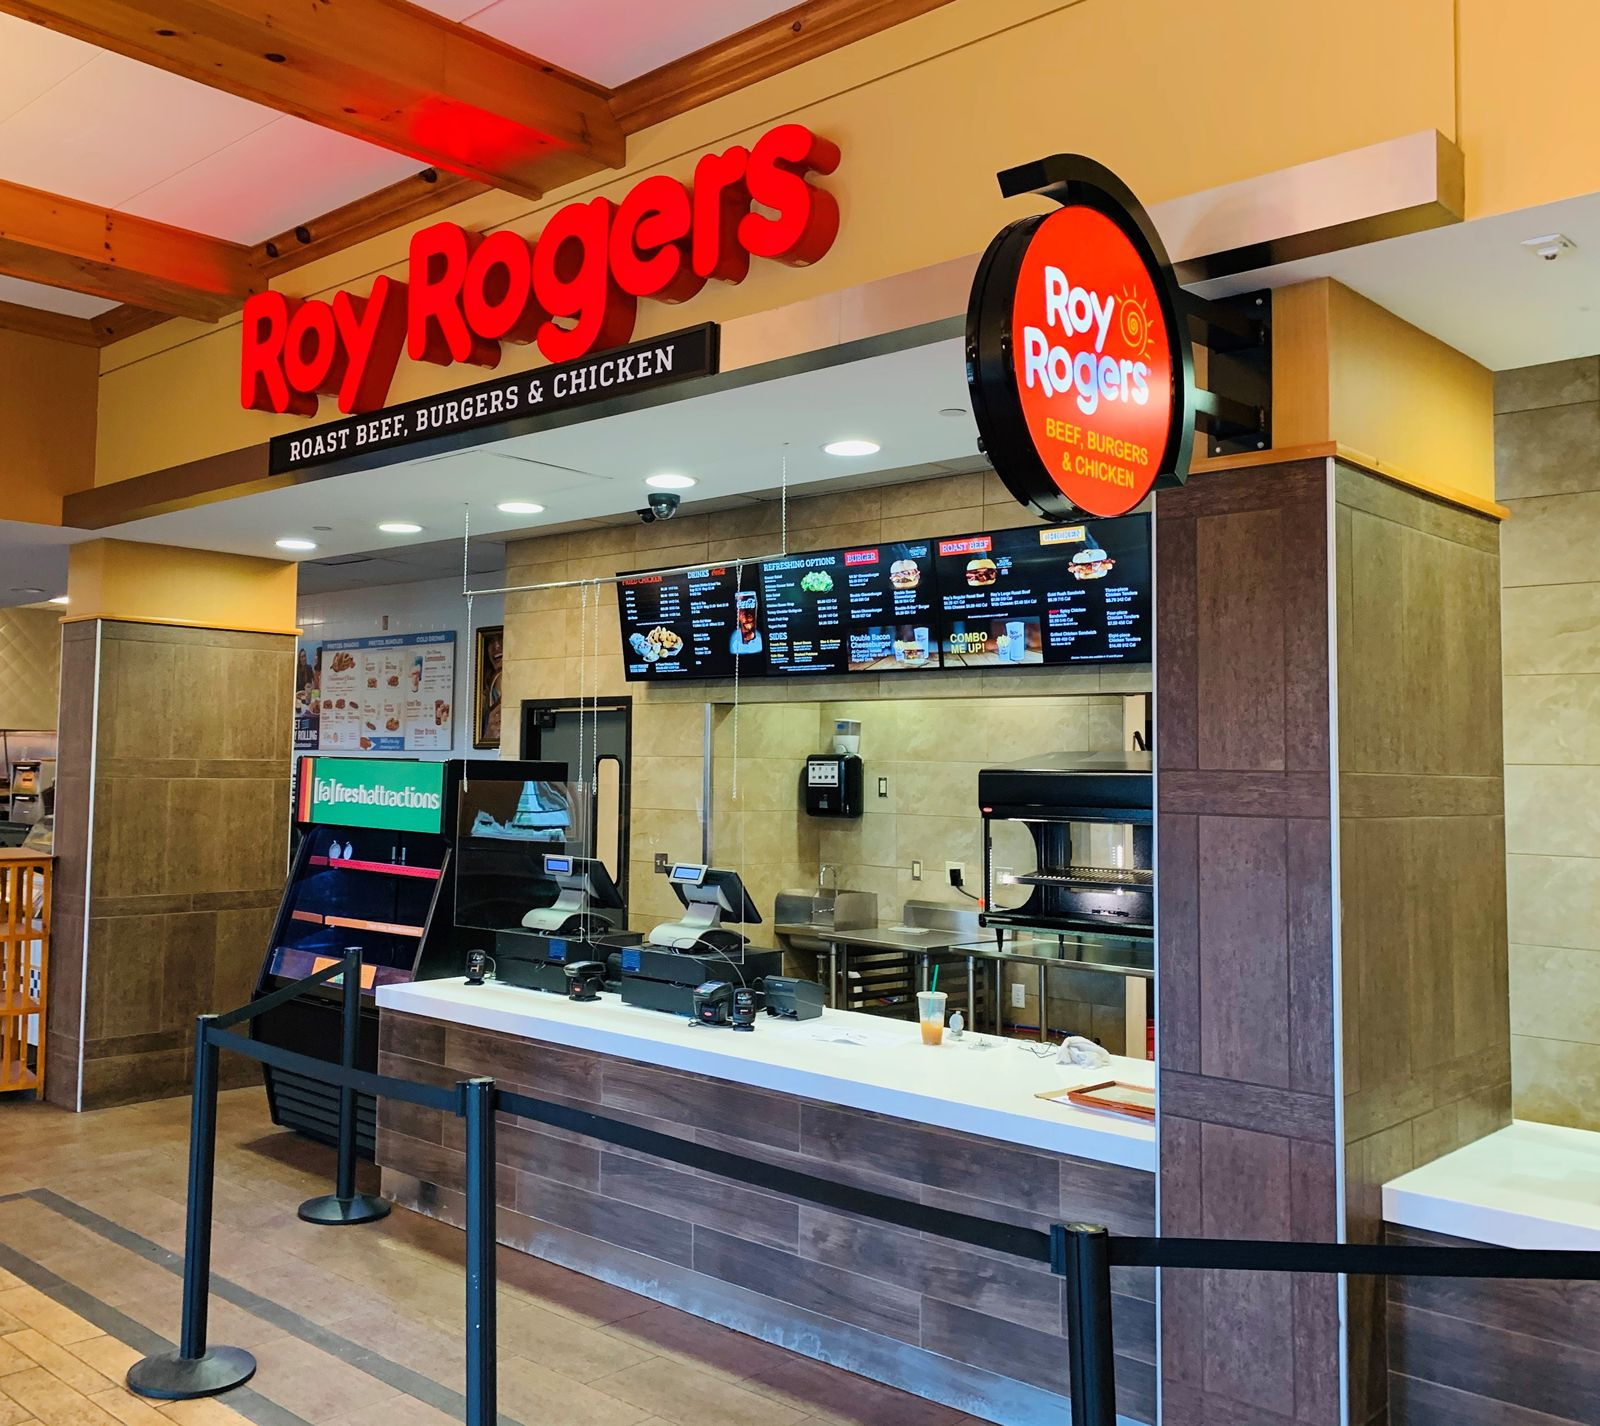 Roy Rogers Coming to University of Maryland Campus